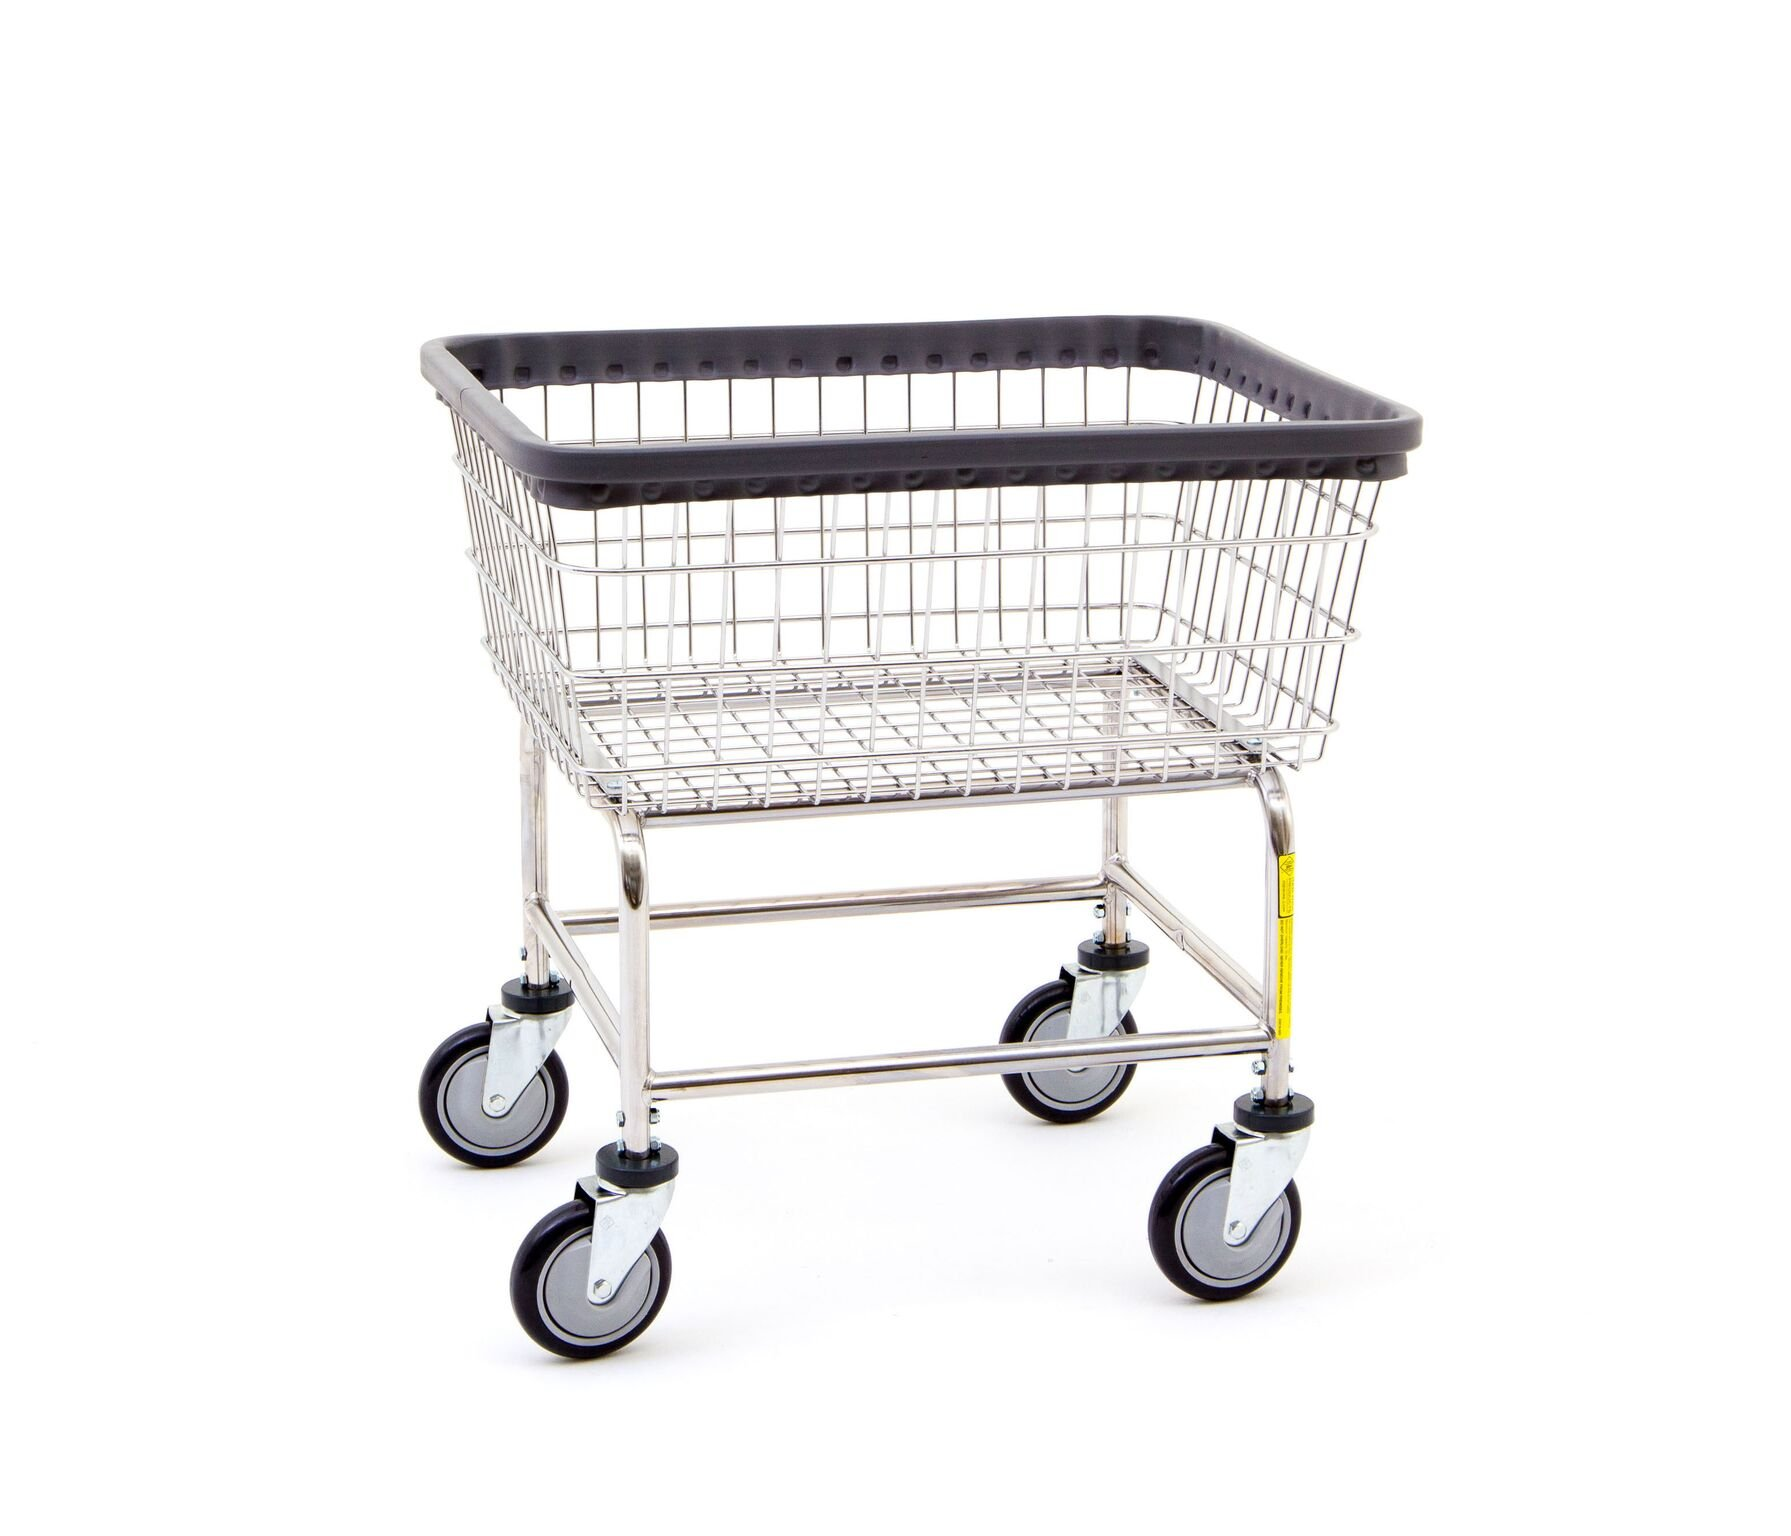 laundry cart on wheels r amp b wire 300g deluxe elevated wire frame metal 28944